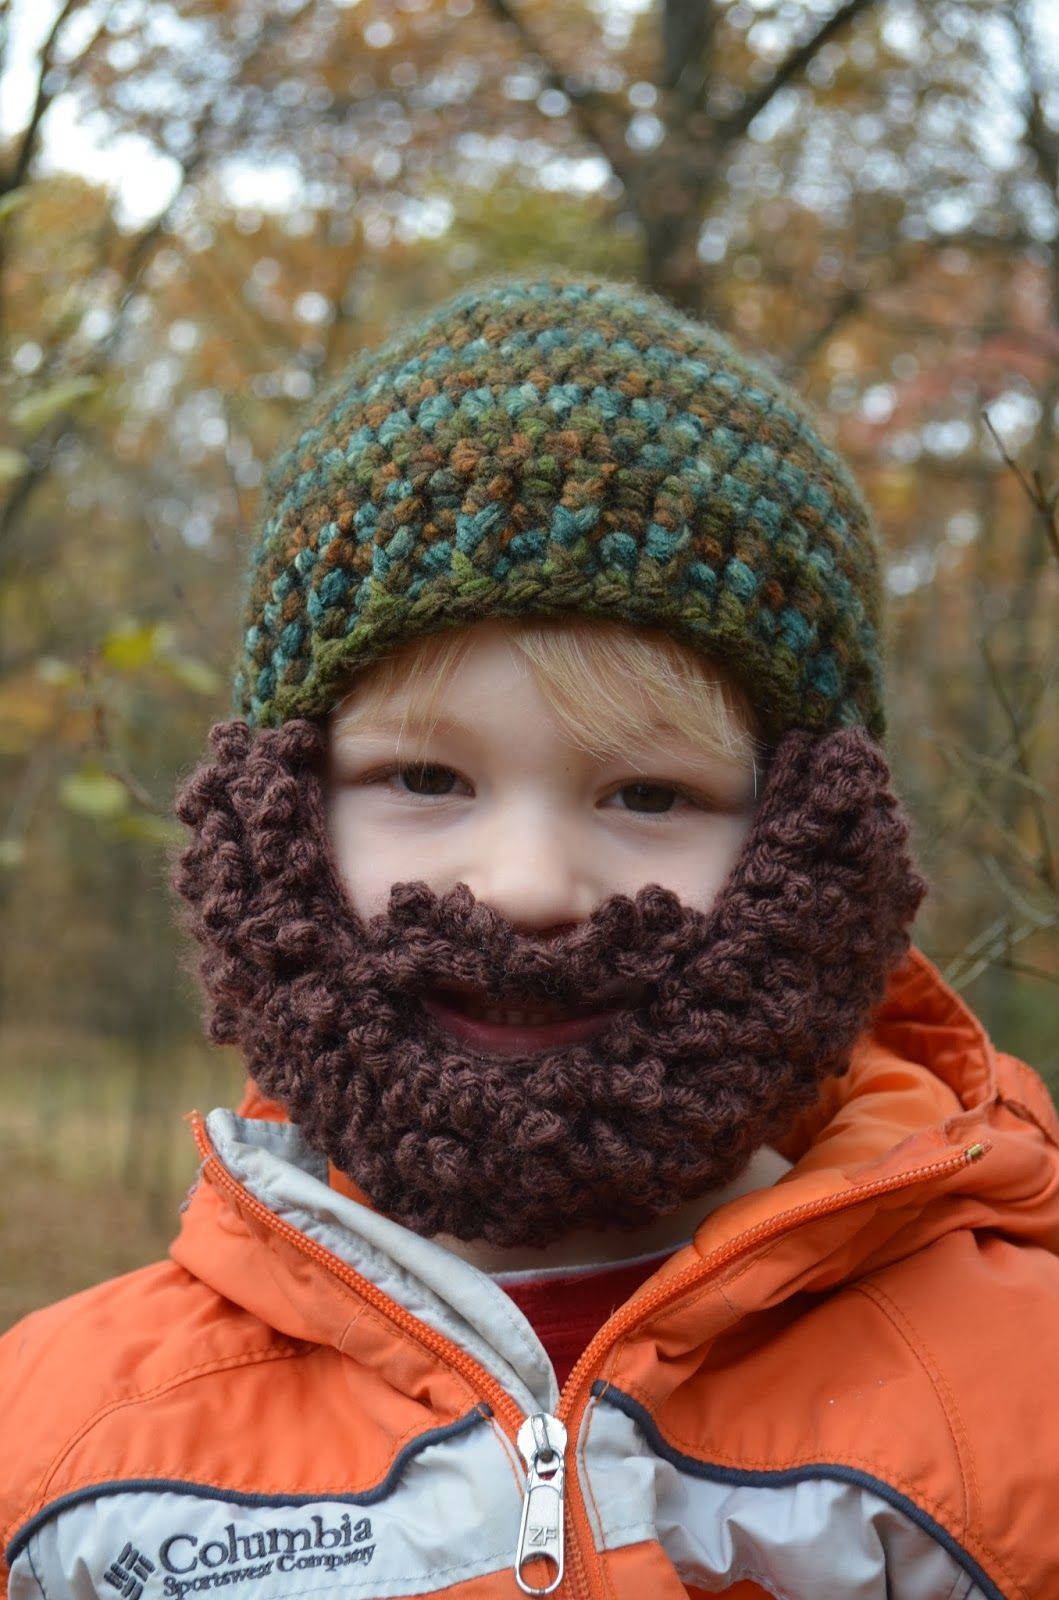 Hand Me Down Hobby: Mountain Man Beard Hat just a little bigger for ...